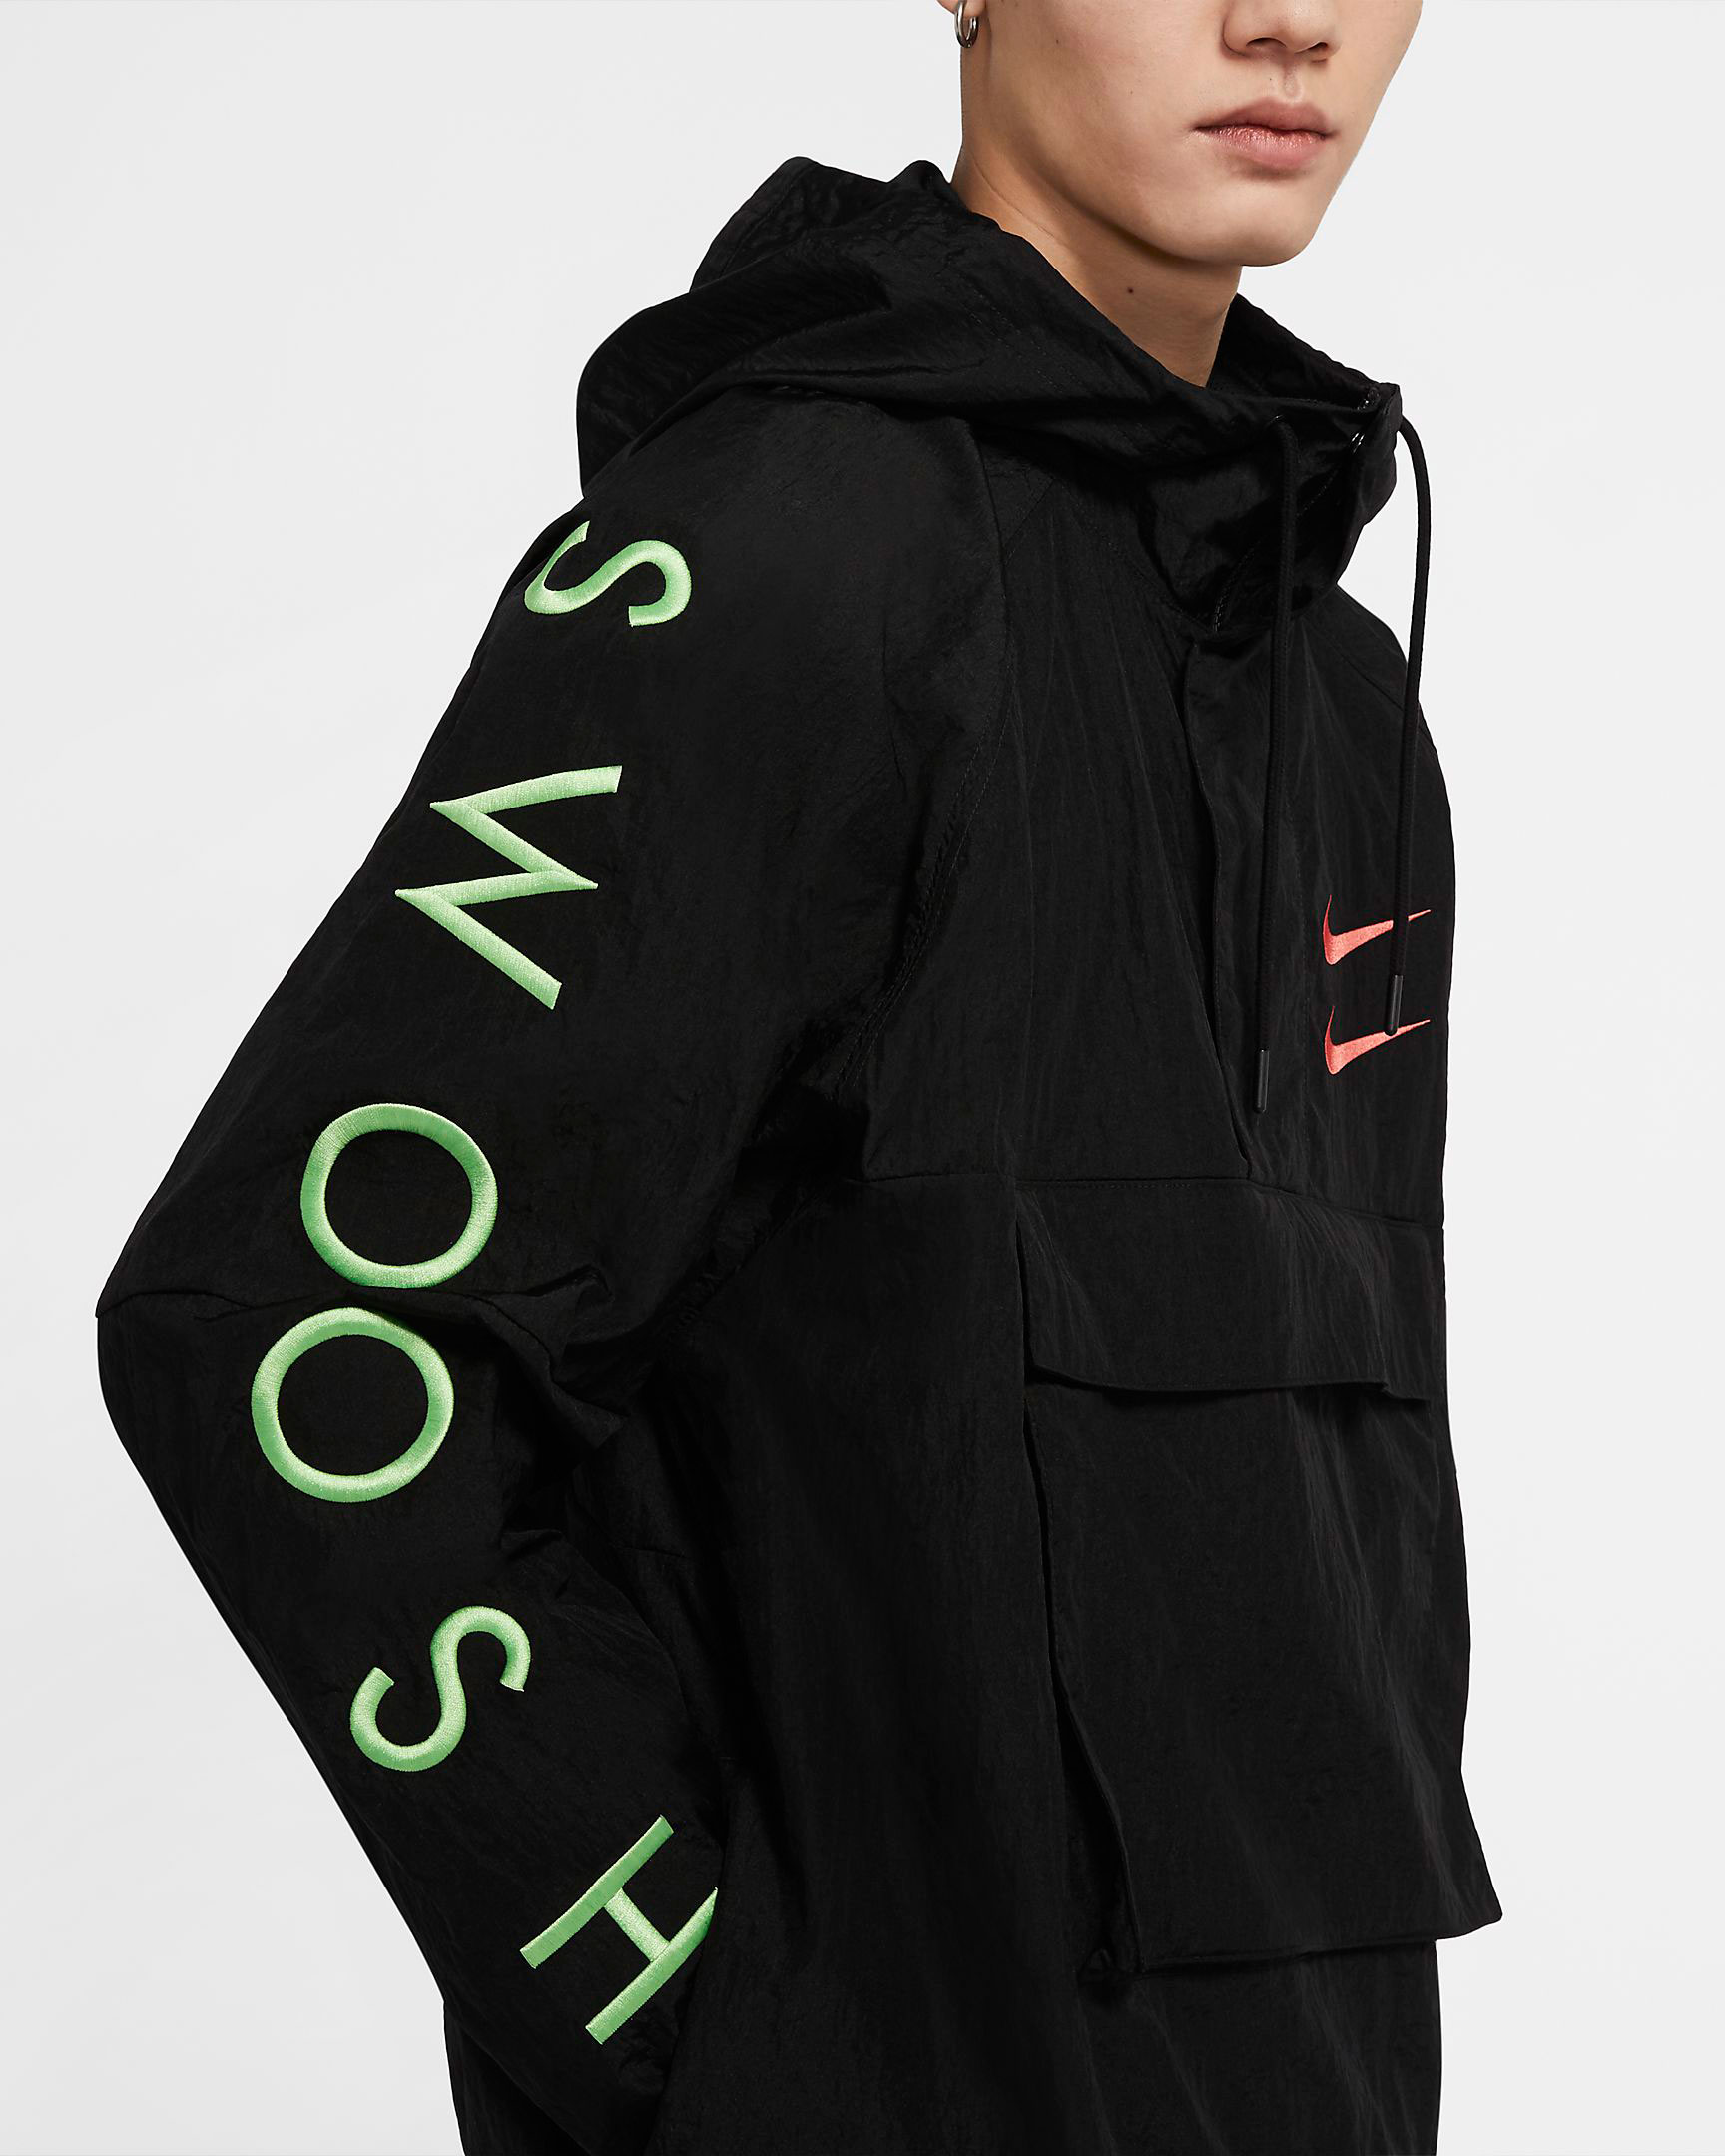 nike-worldwide-jacket-black-green-1